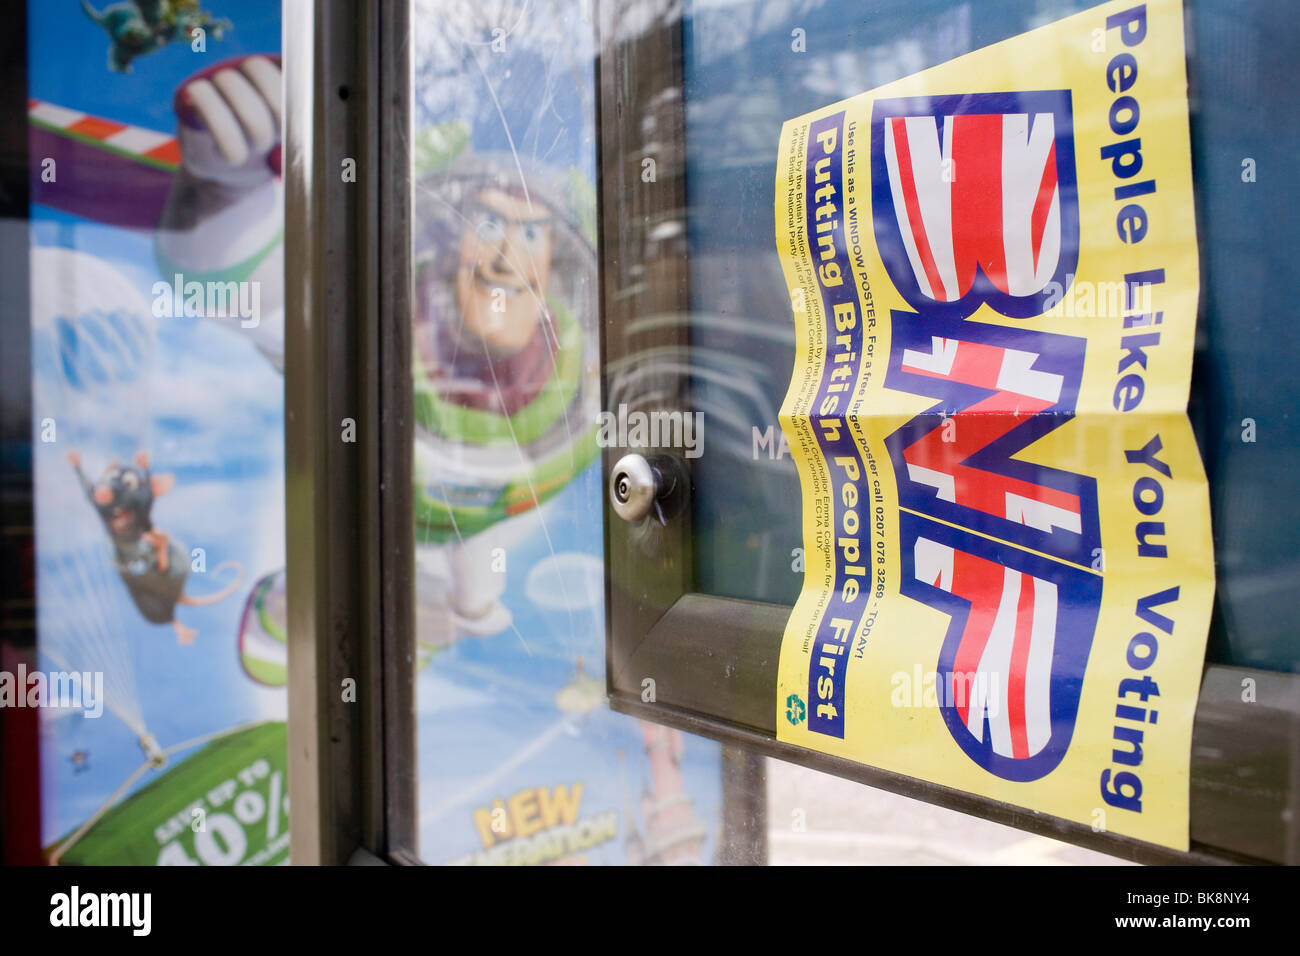 a vote bnp political party flier at a bus stop stock photo 29081672